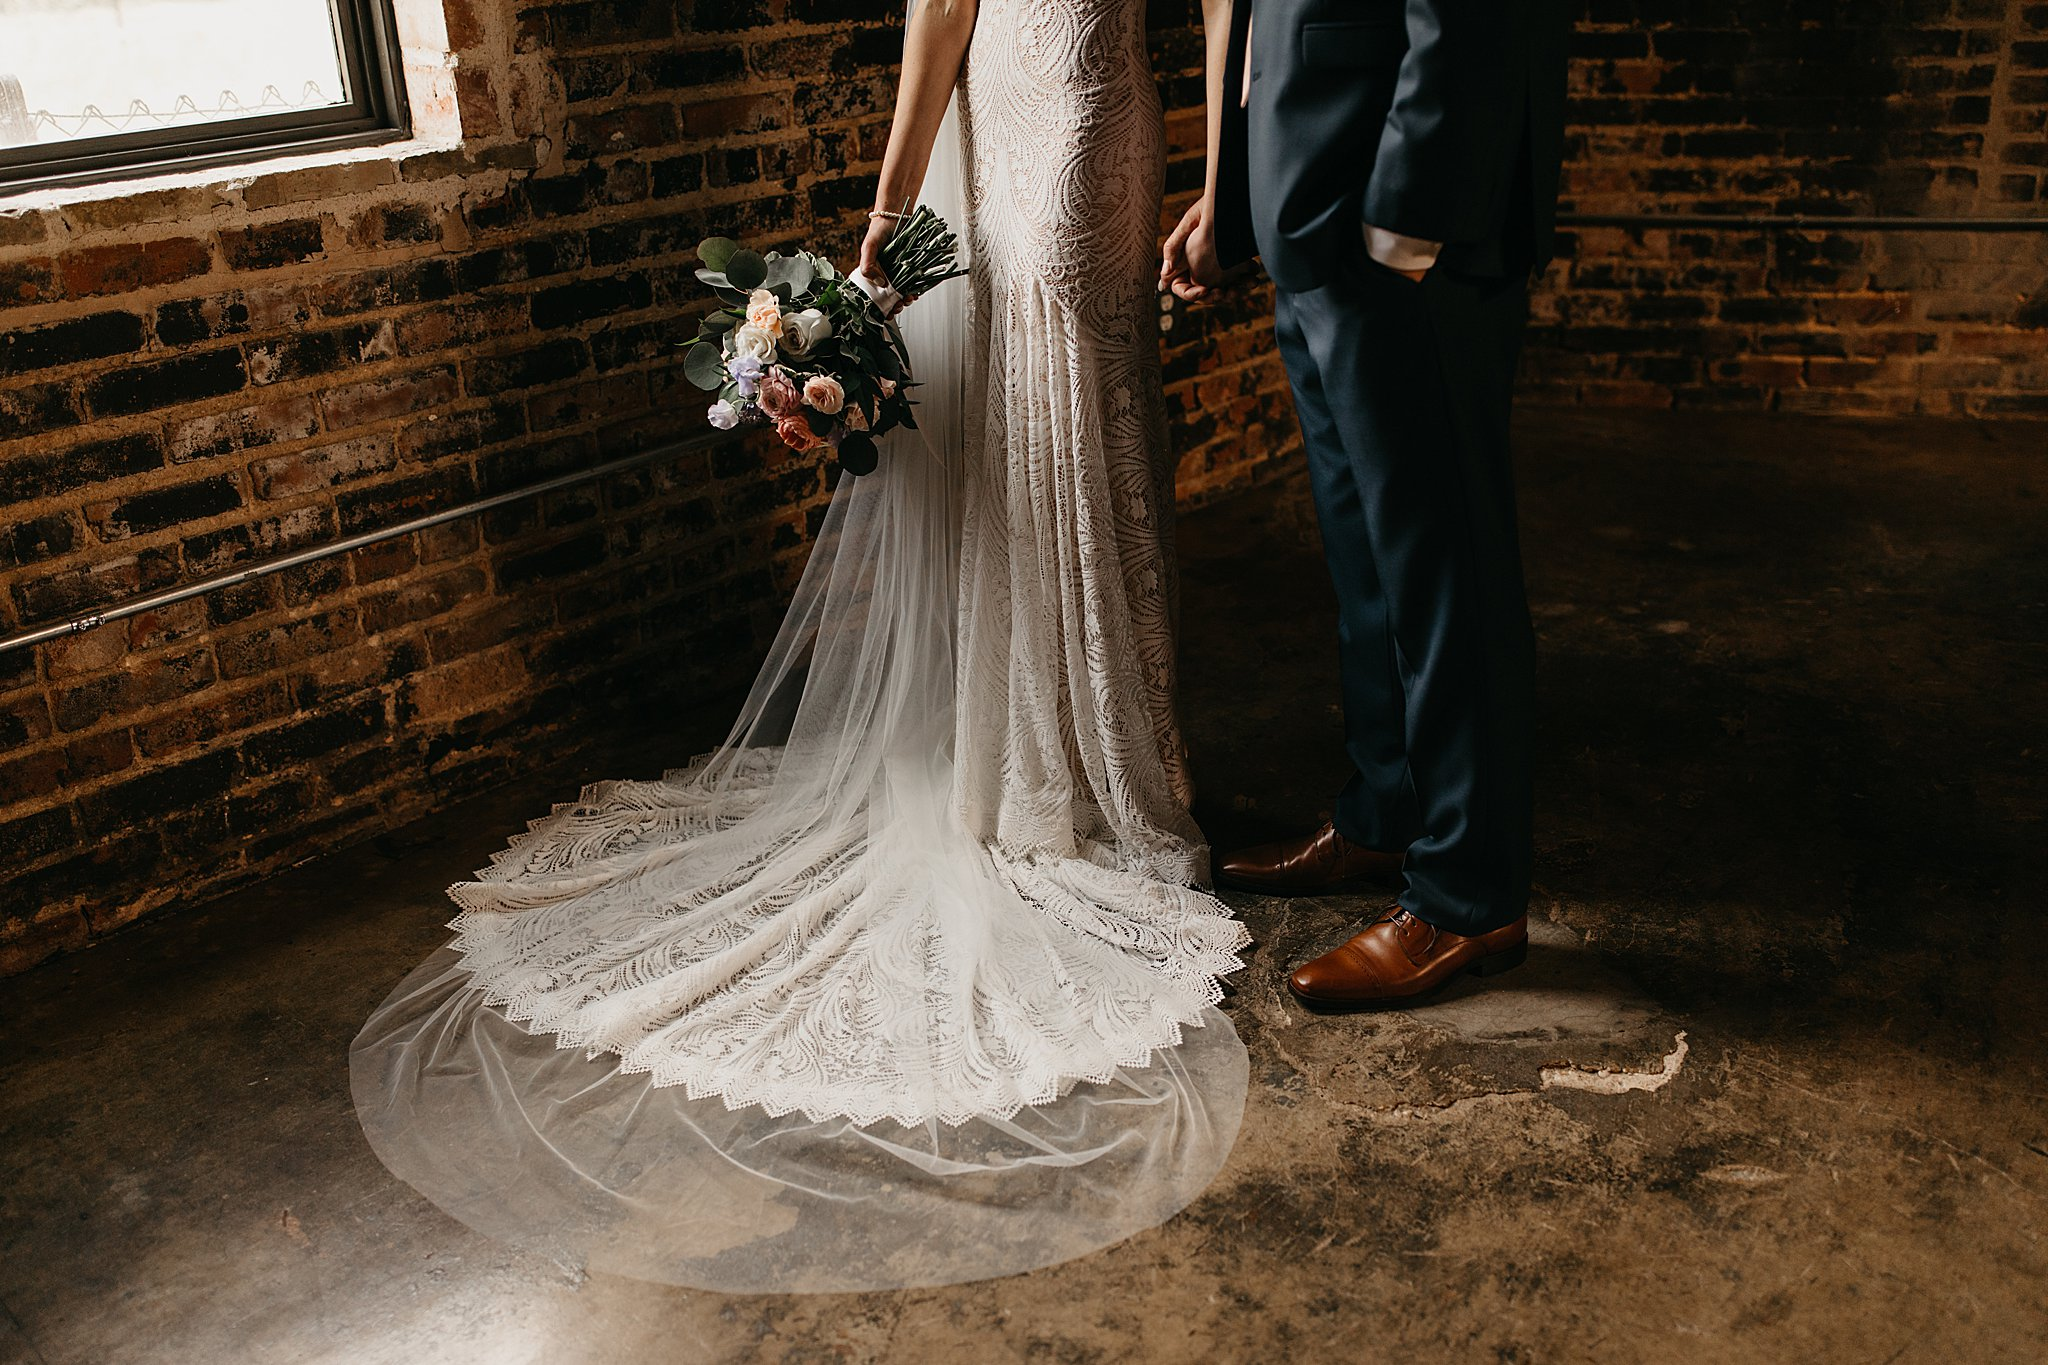 Wilderlove Co_Wedding Photographer_Industrial Wedding_Jewish Wedding_Dallas Texas Wedding_Brake & Clutch Warehouse_North Texas Photographer_0027.jpg